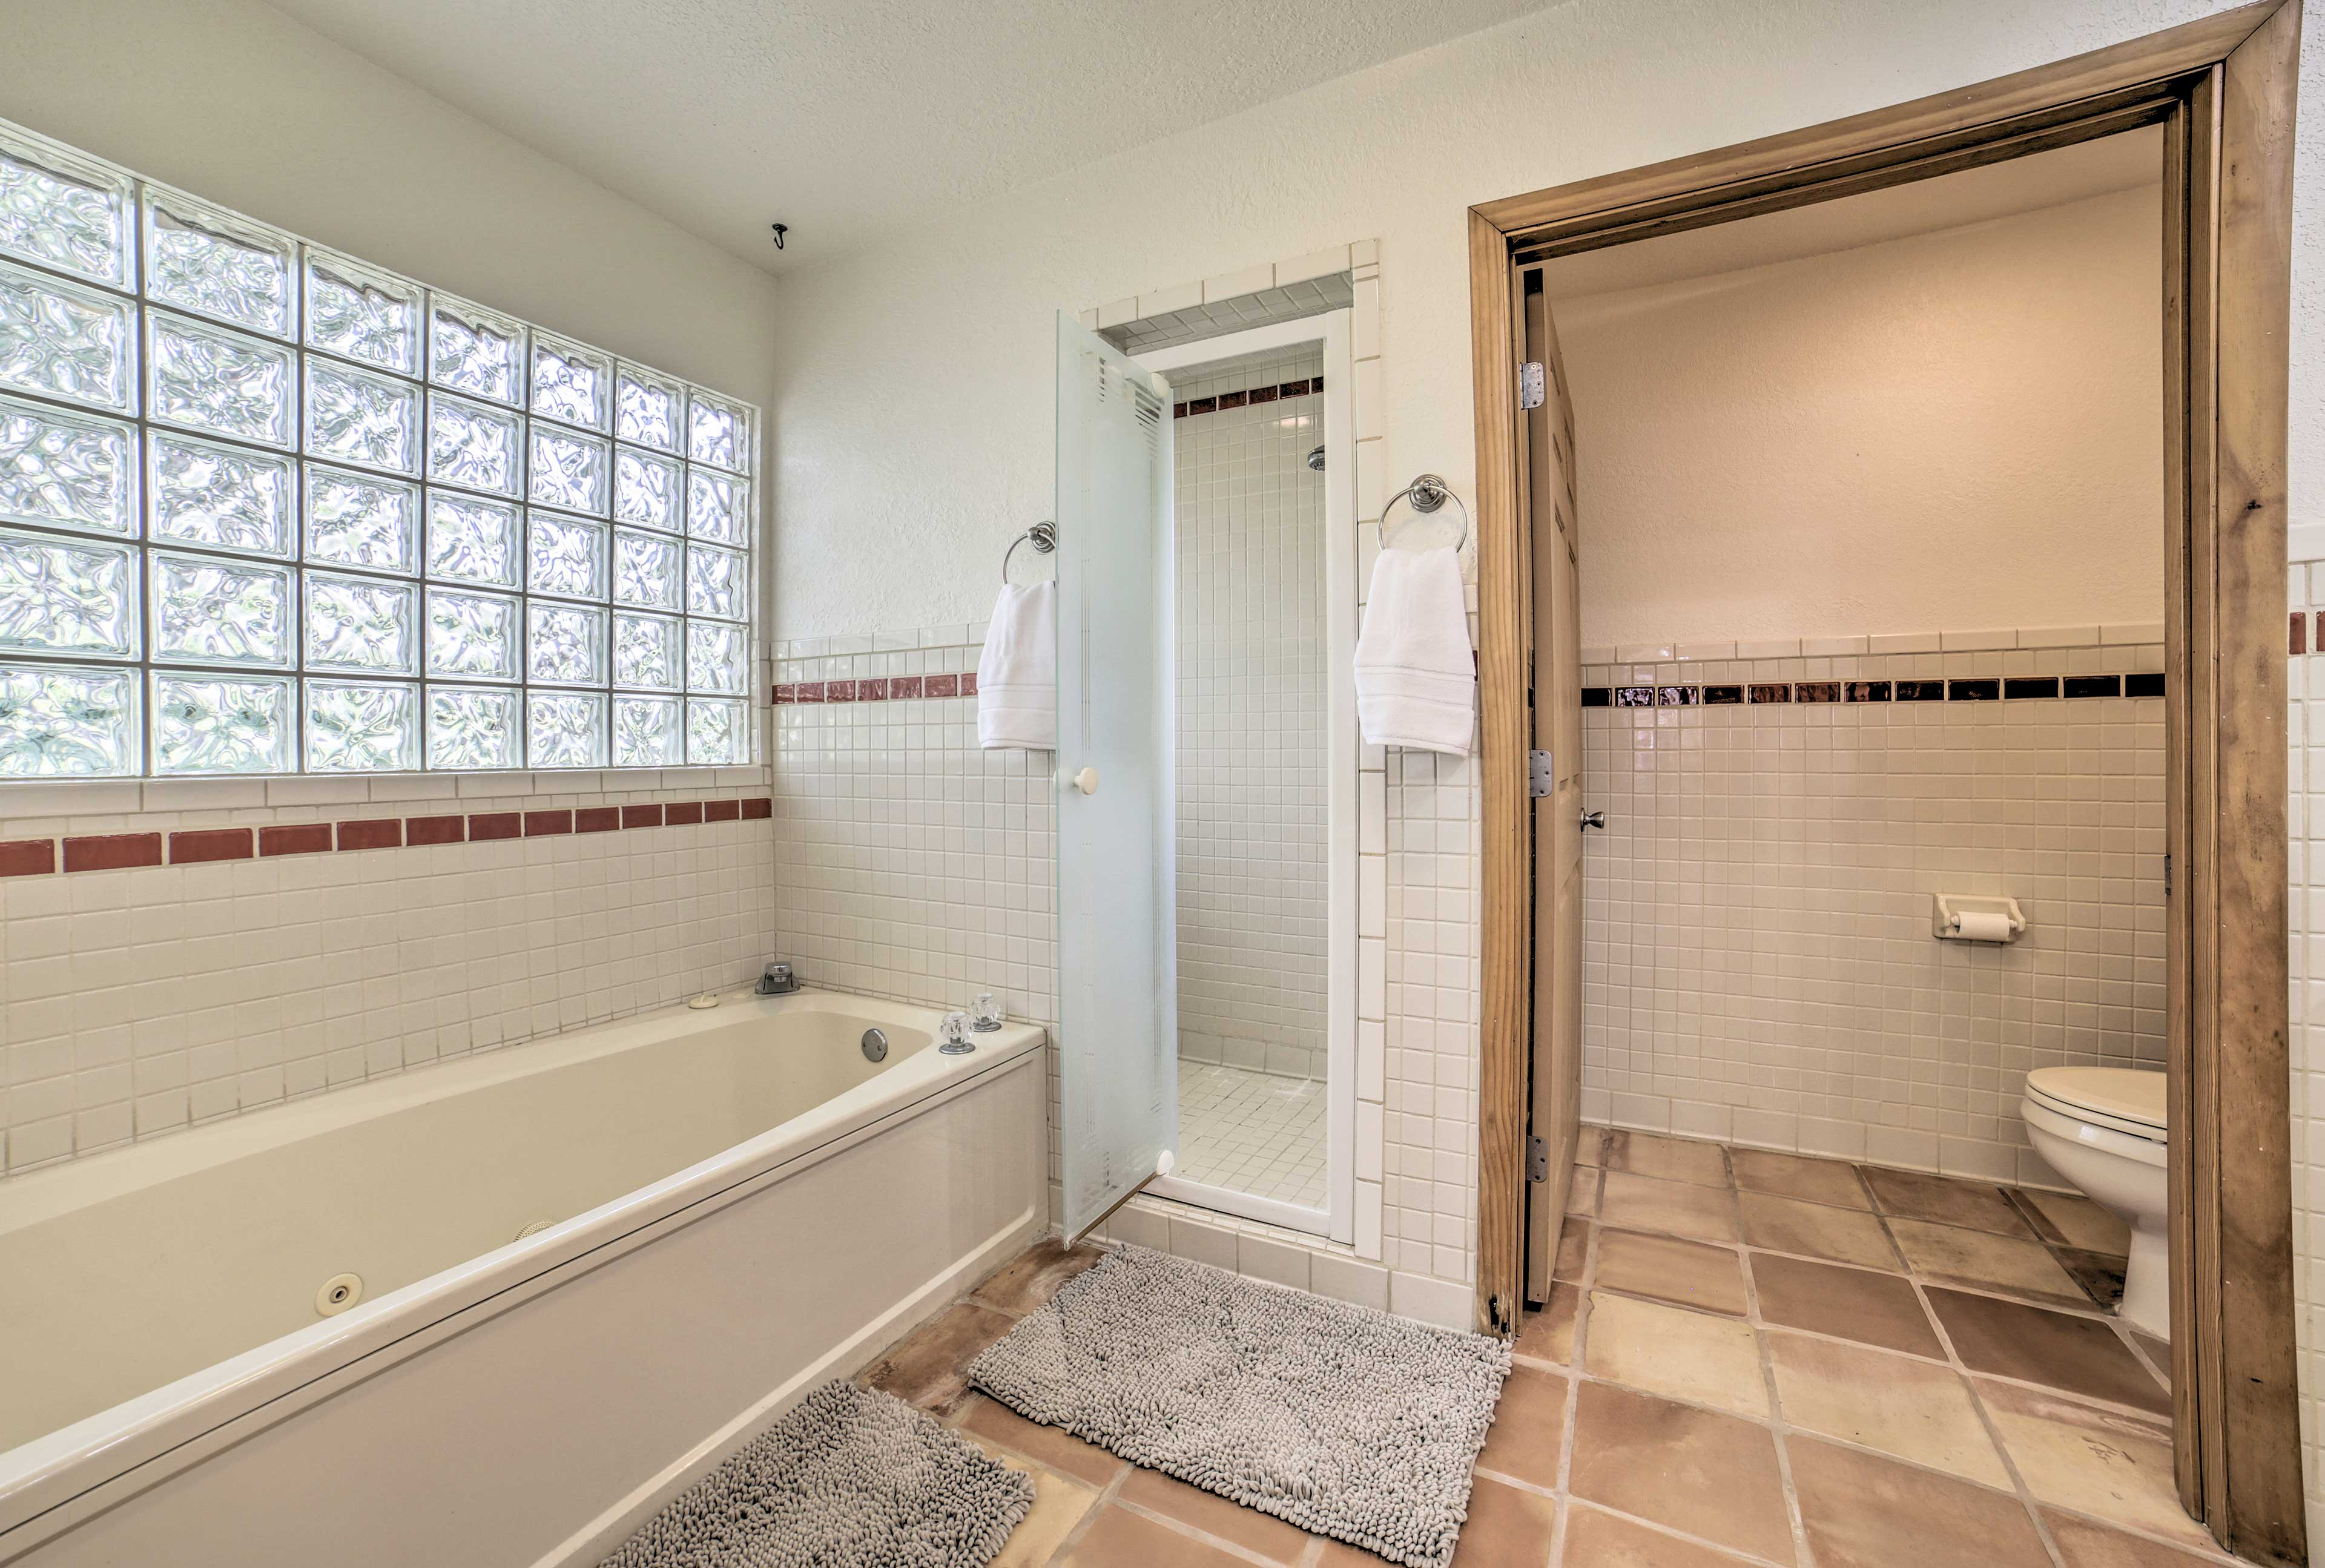 The master bathroom boasts a jetted tub and walk-in shower.